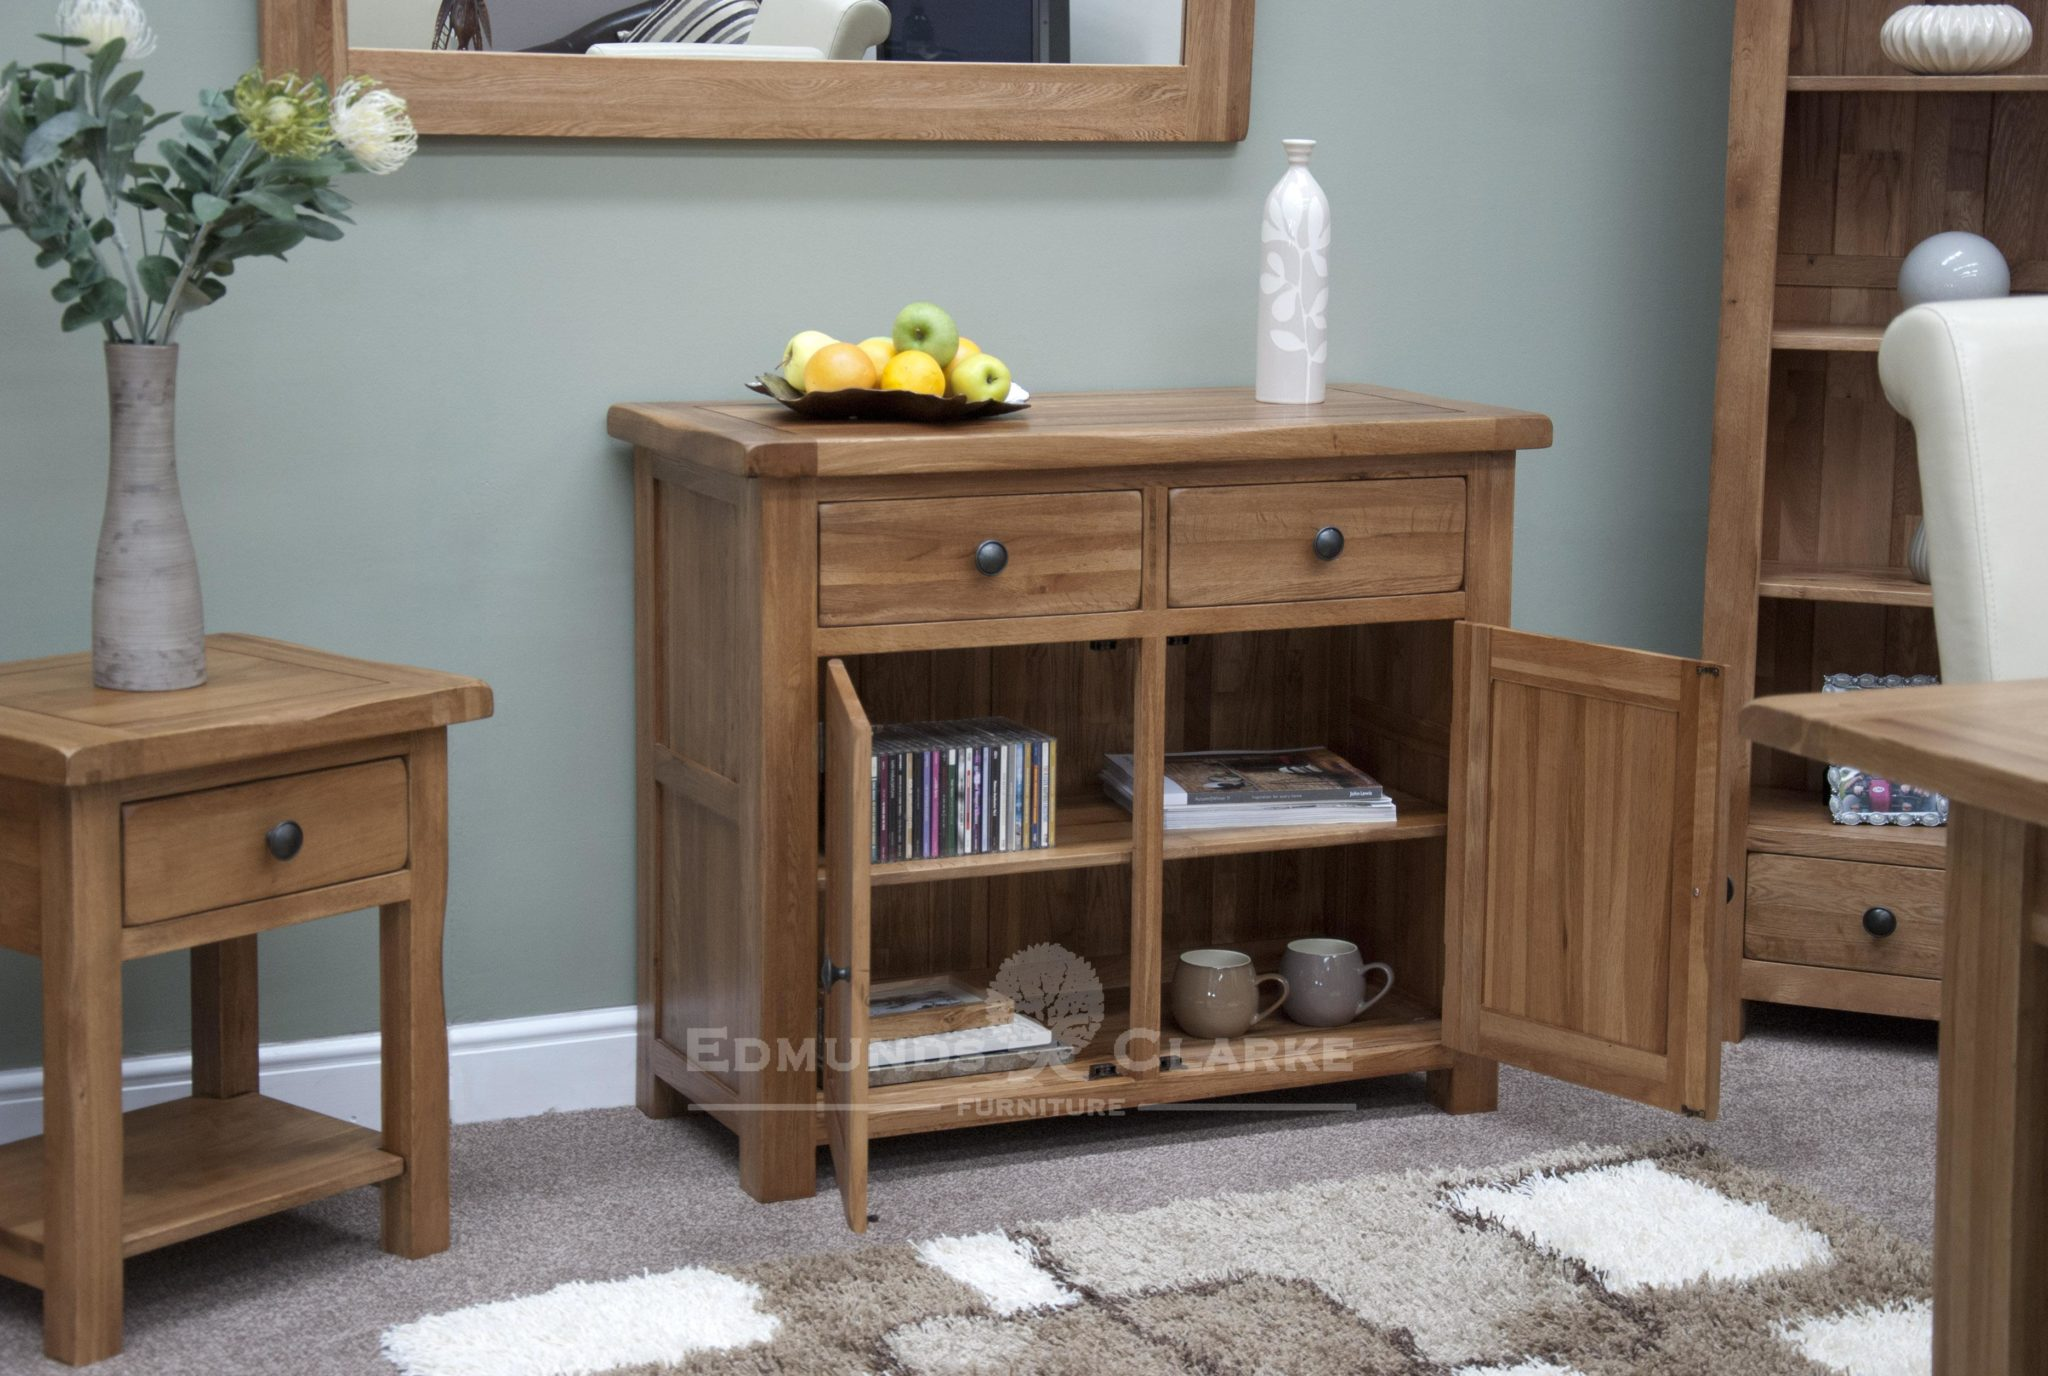 Lavenham oak small rustic sideboard two doors and drawers